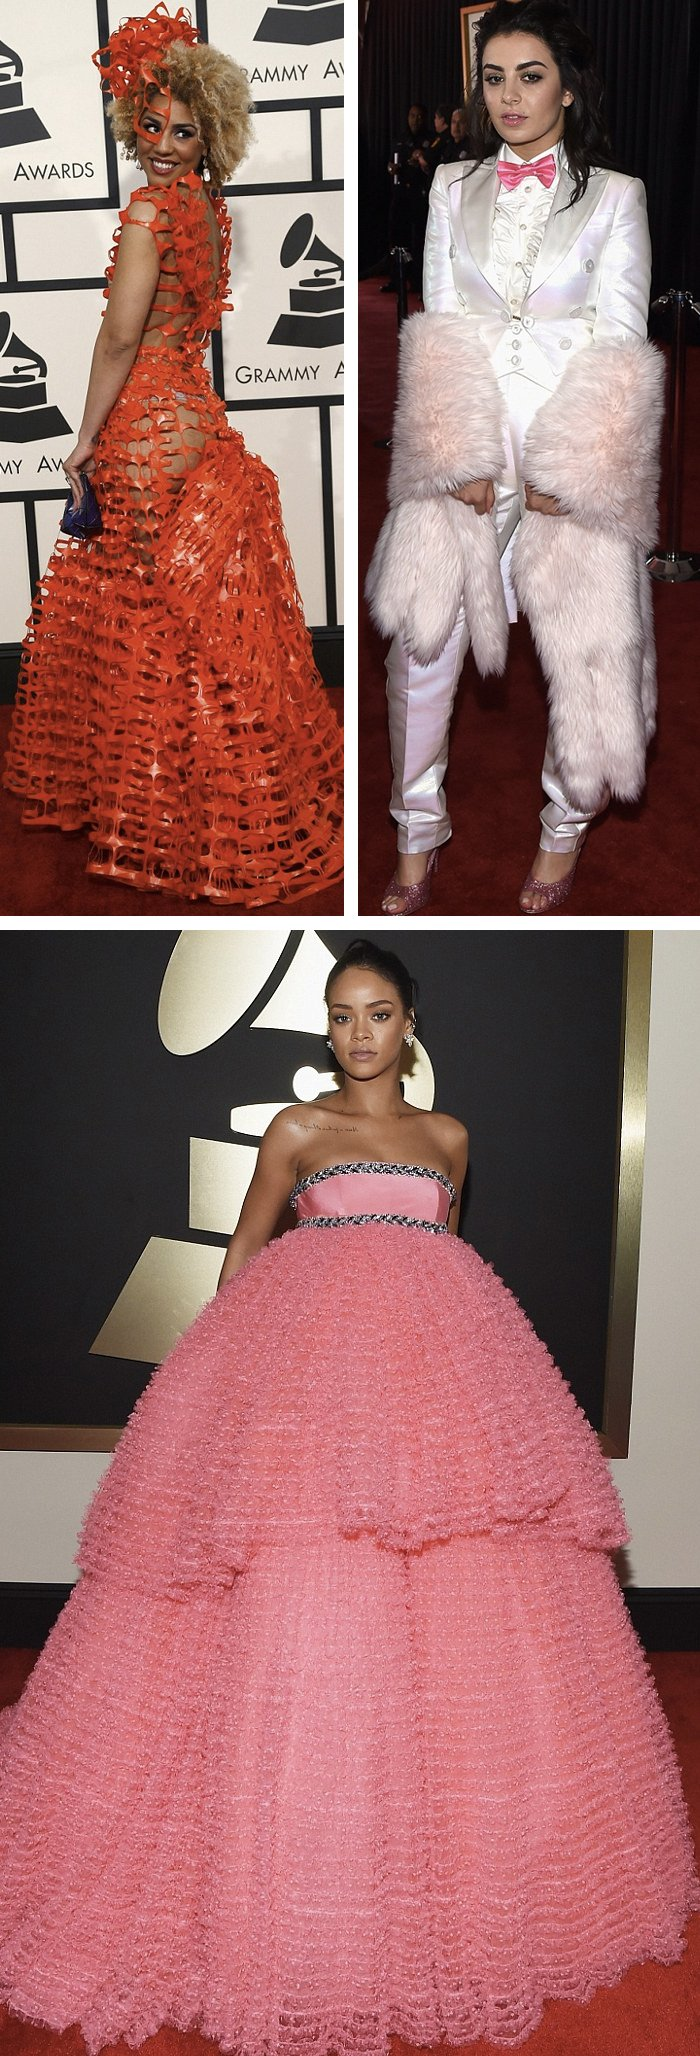 piores-looks-grammy-2015